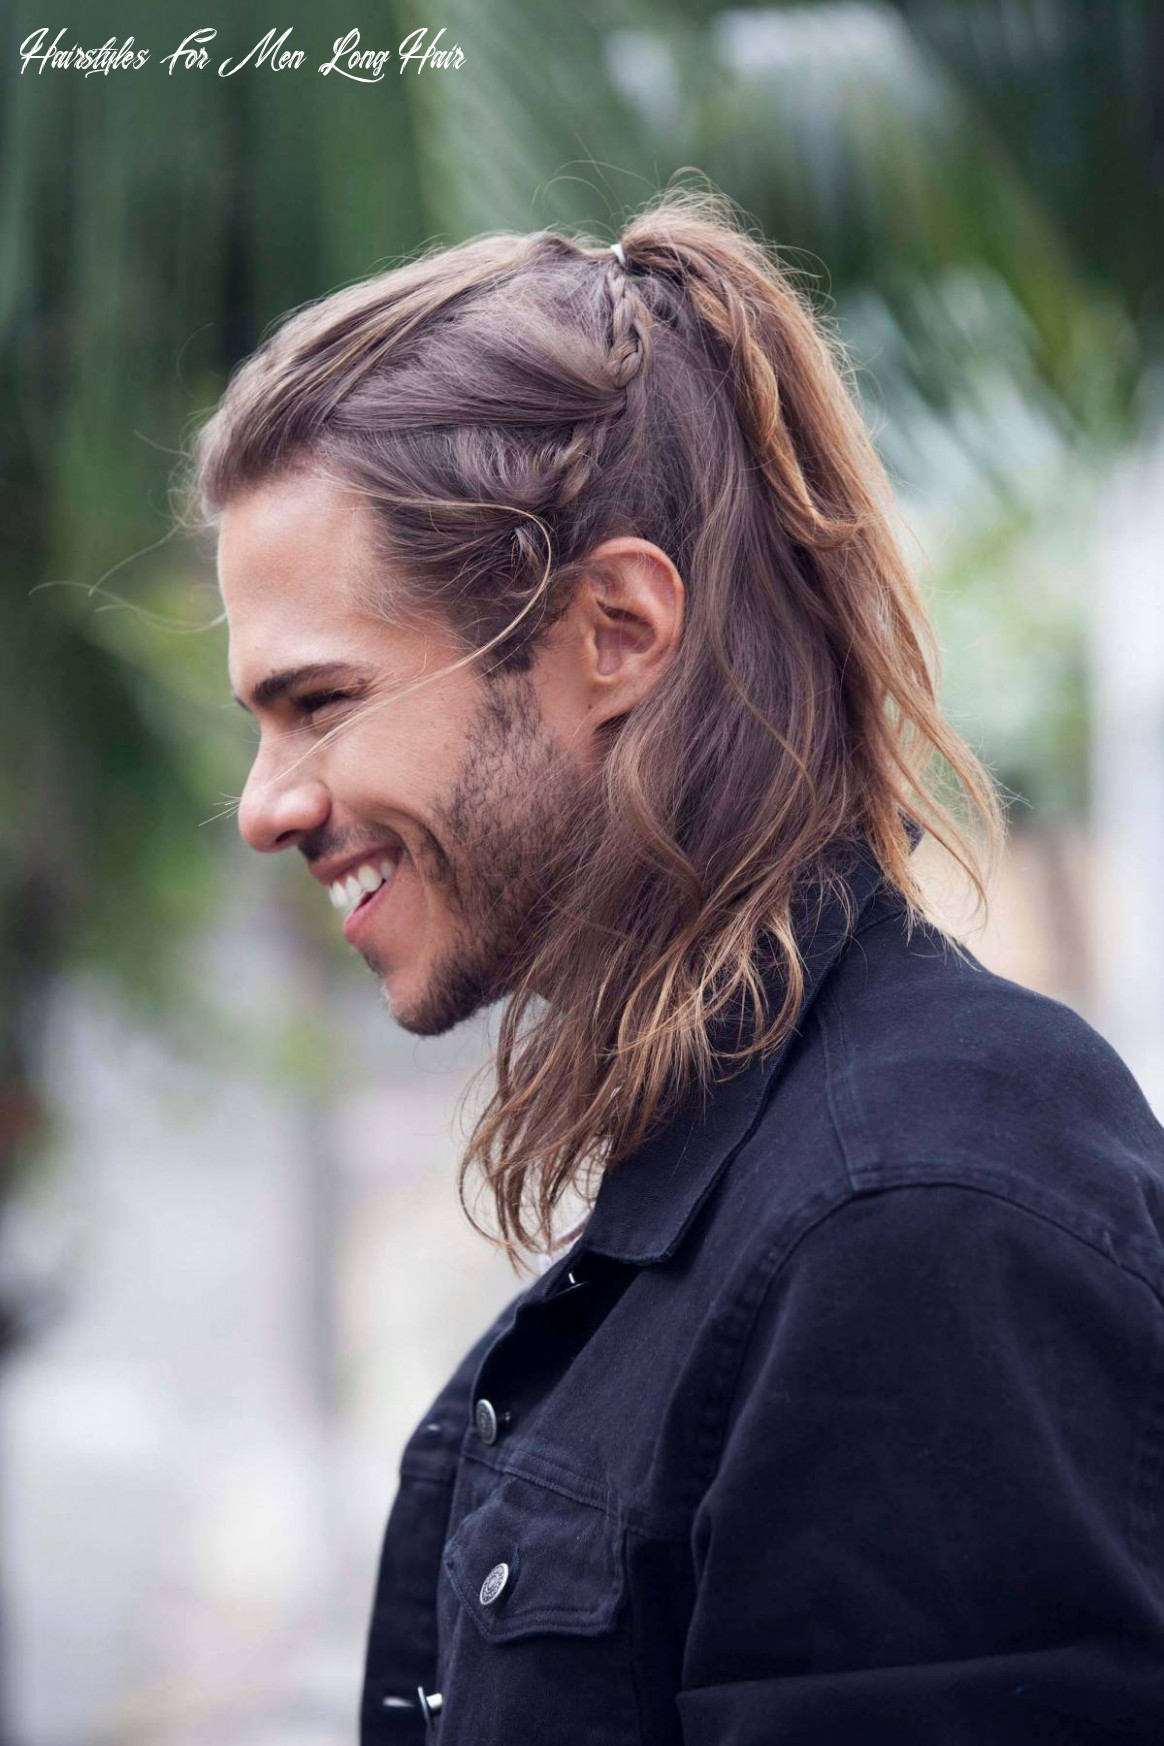 11 incredible long hairstyles & haircuts for men hairstyles for men long hair